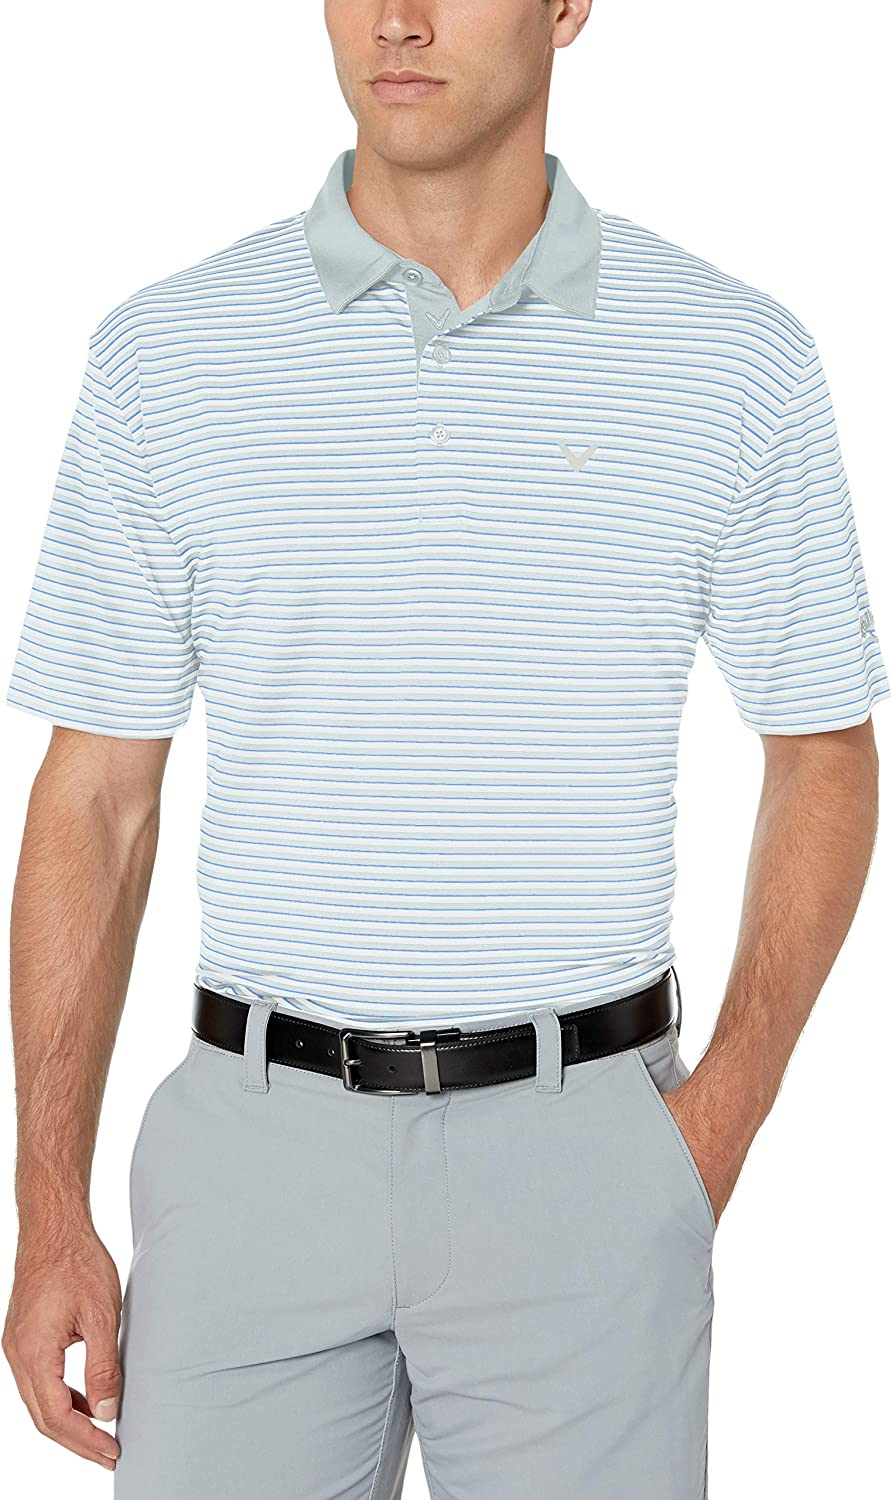 Callaway Mens Chest-Striped Blocked Polo Short Sleeve